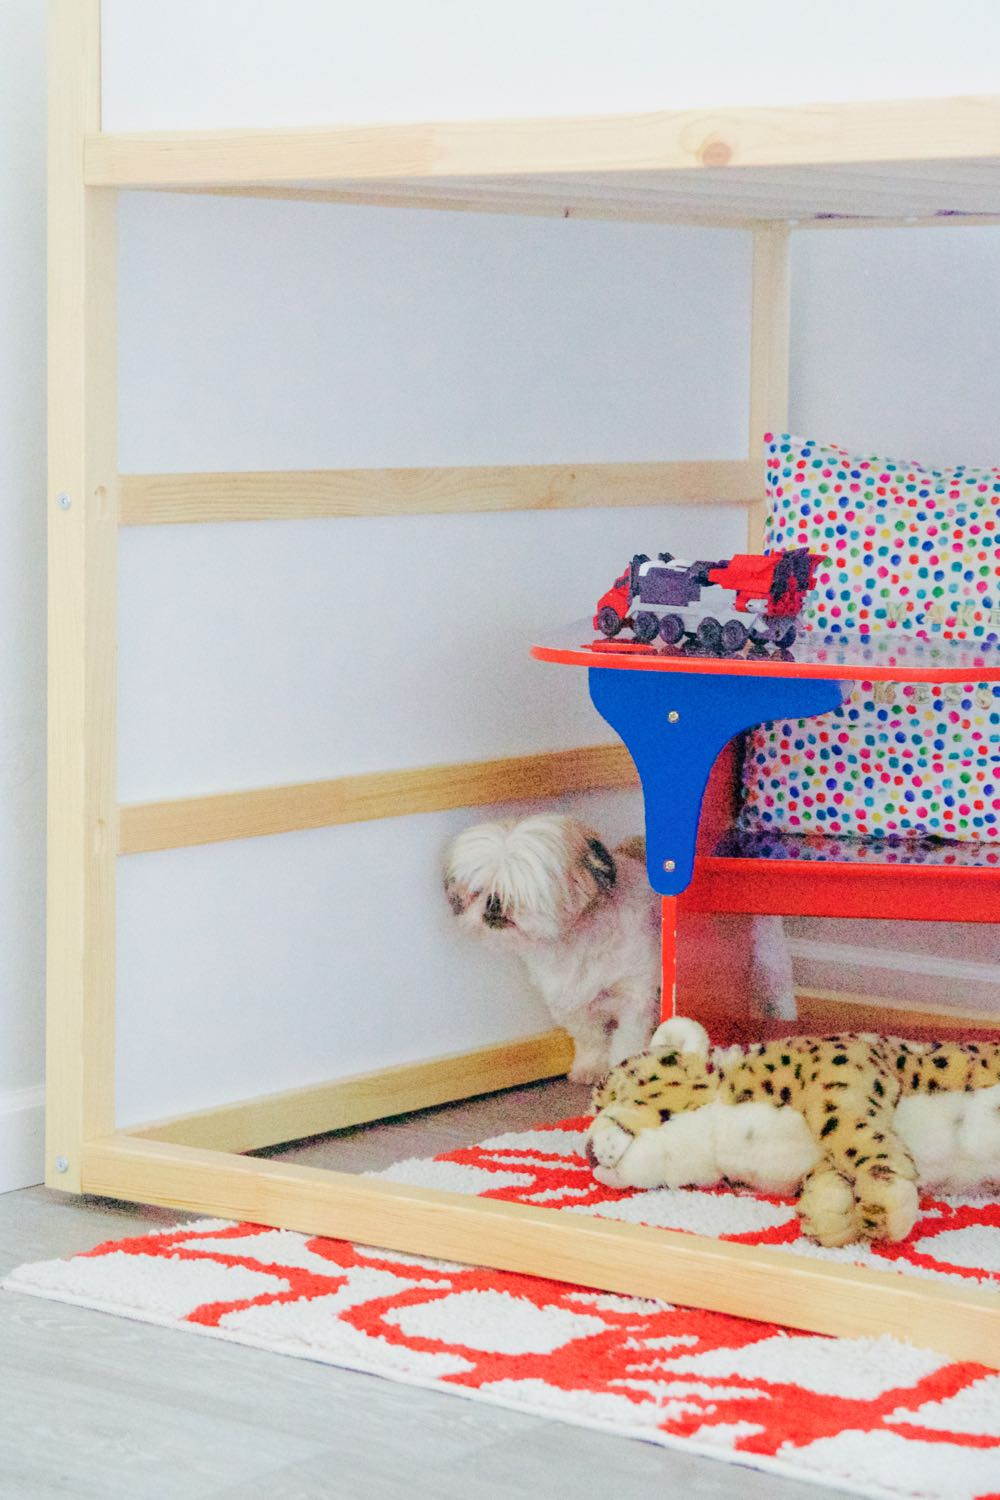 Creating a play area under the Ikea lofted bed